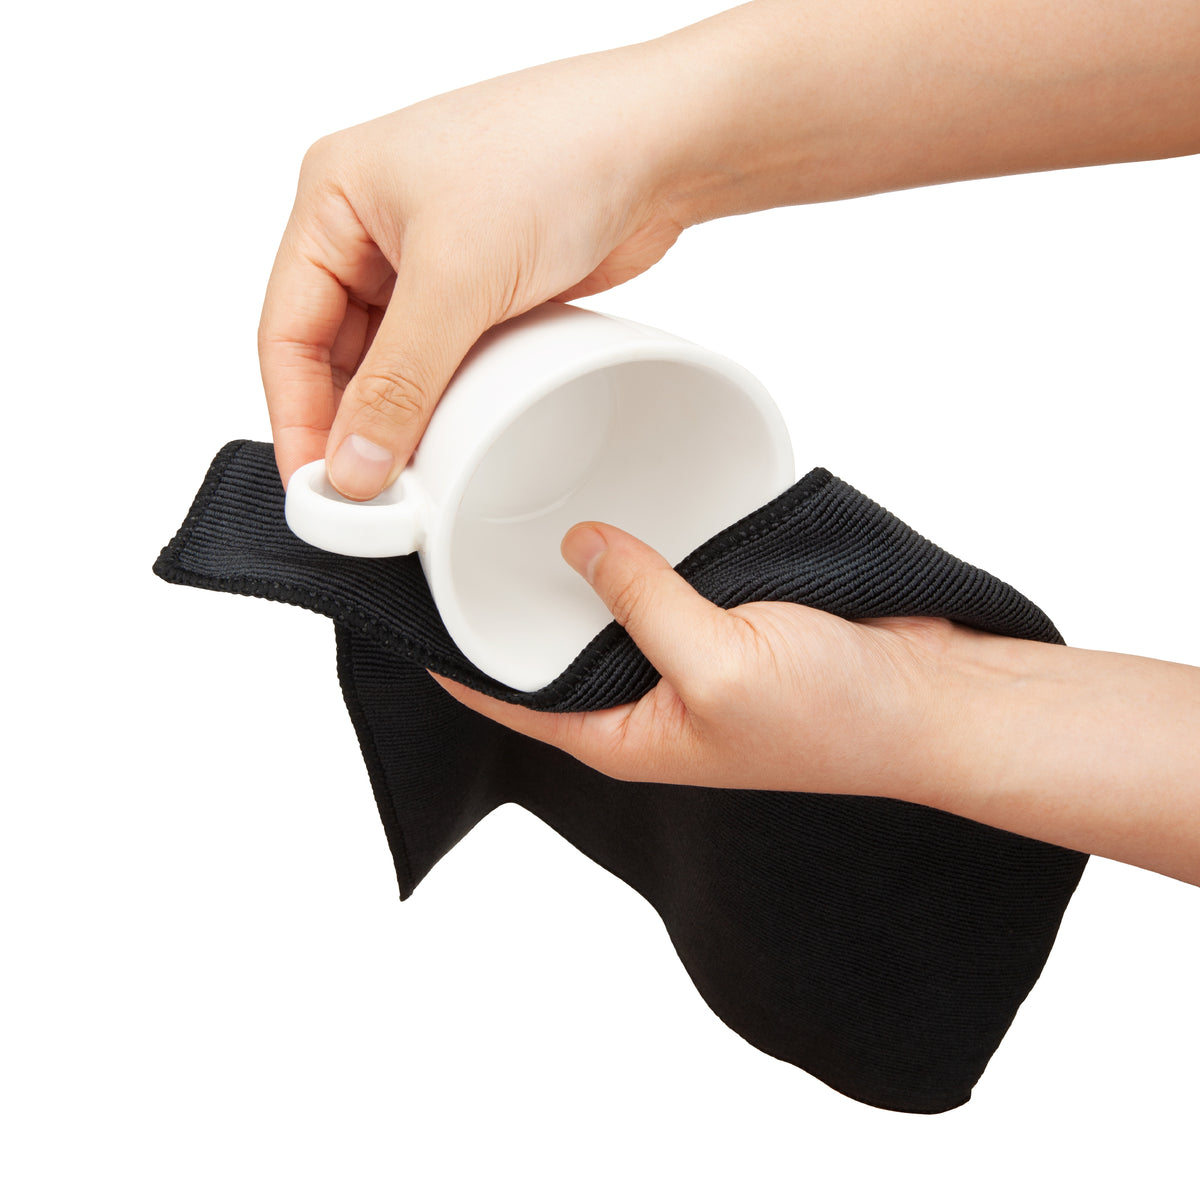 Cleaning with the EspressoWorks 100% Microfiber Cleaning Cloths (2 Pack)